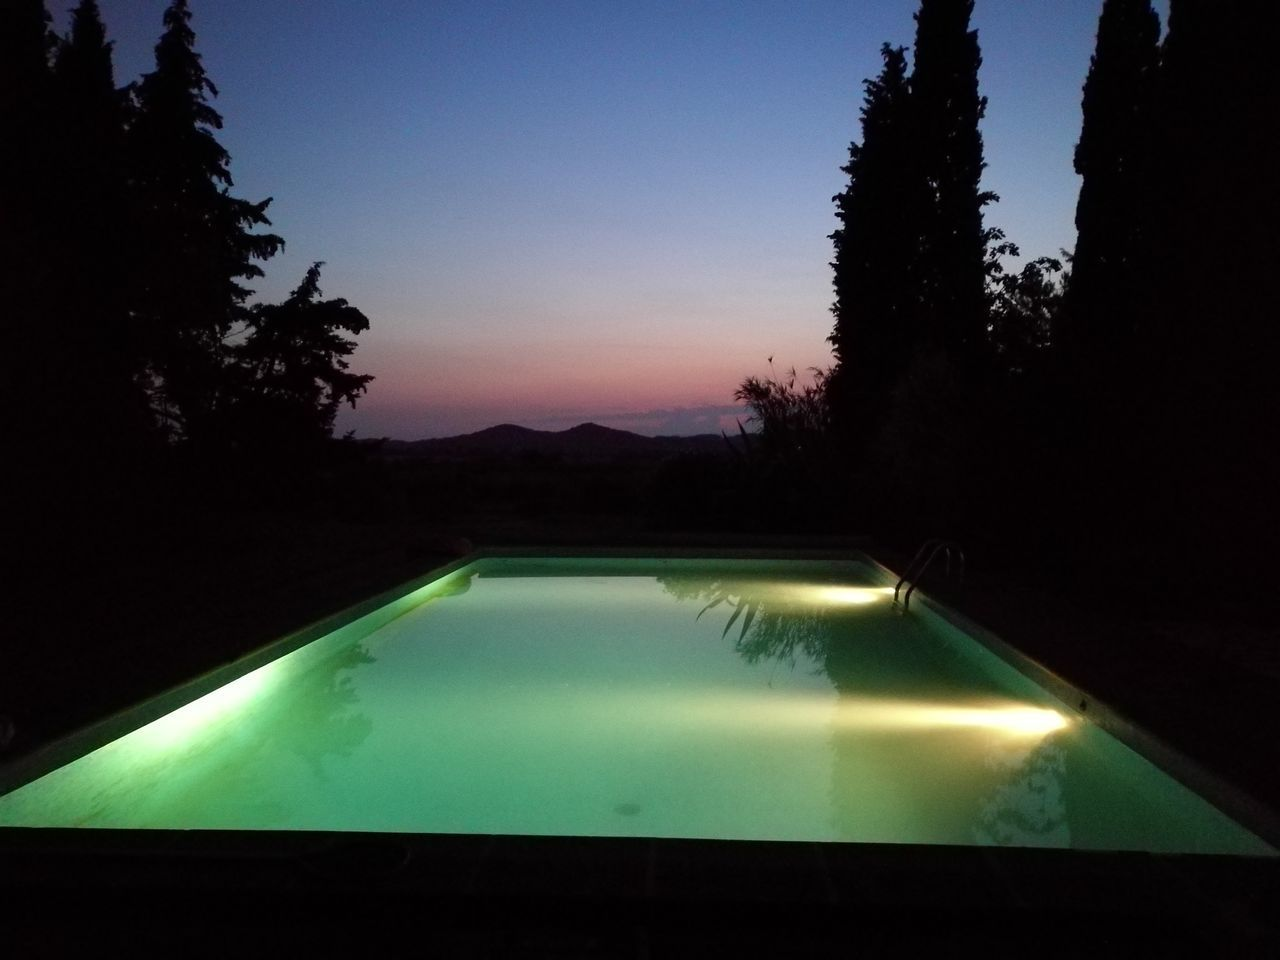 swimming pool, water, tree, no people, night, sunset, silhouette, illuminated, tranquility, nature, growth, outdoors, sky, beauty in nature